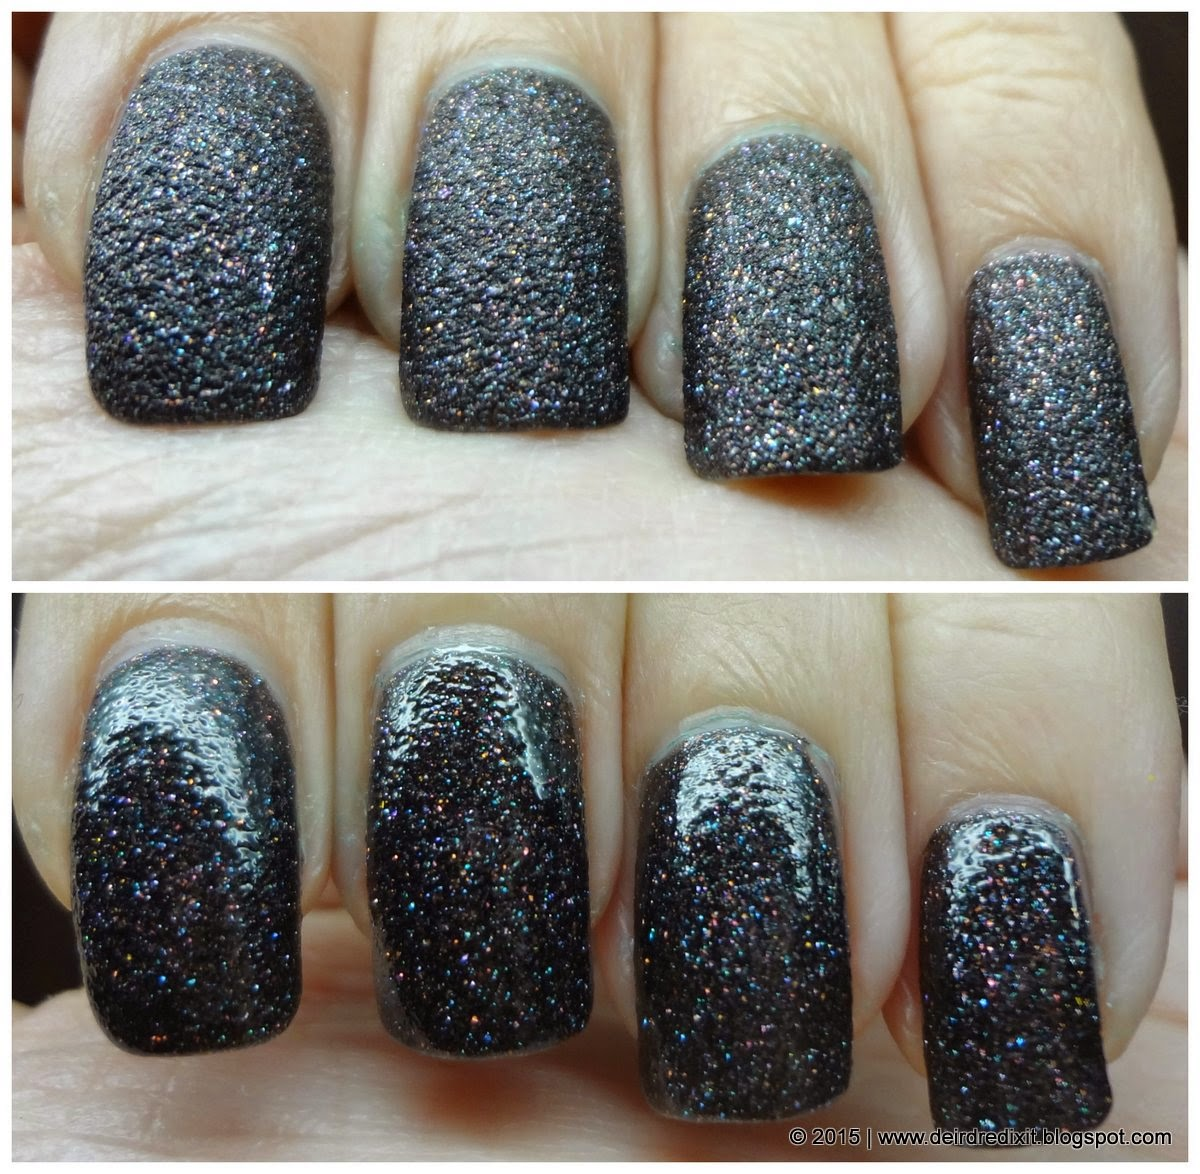 Kiko Real Glare nr. 06 in Exciting Dark Brown without/with Top Coat